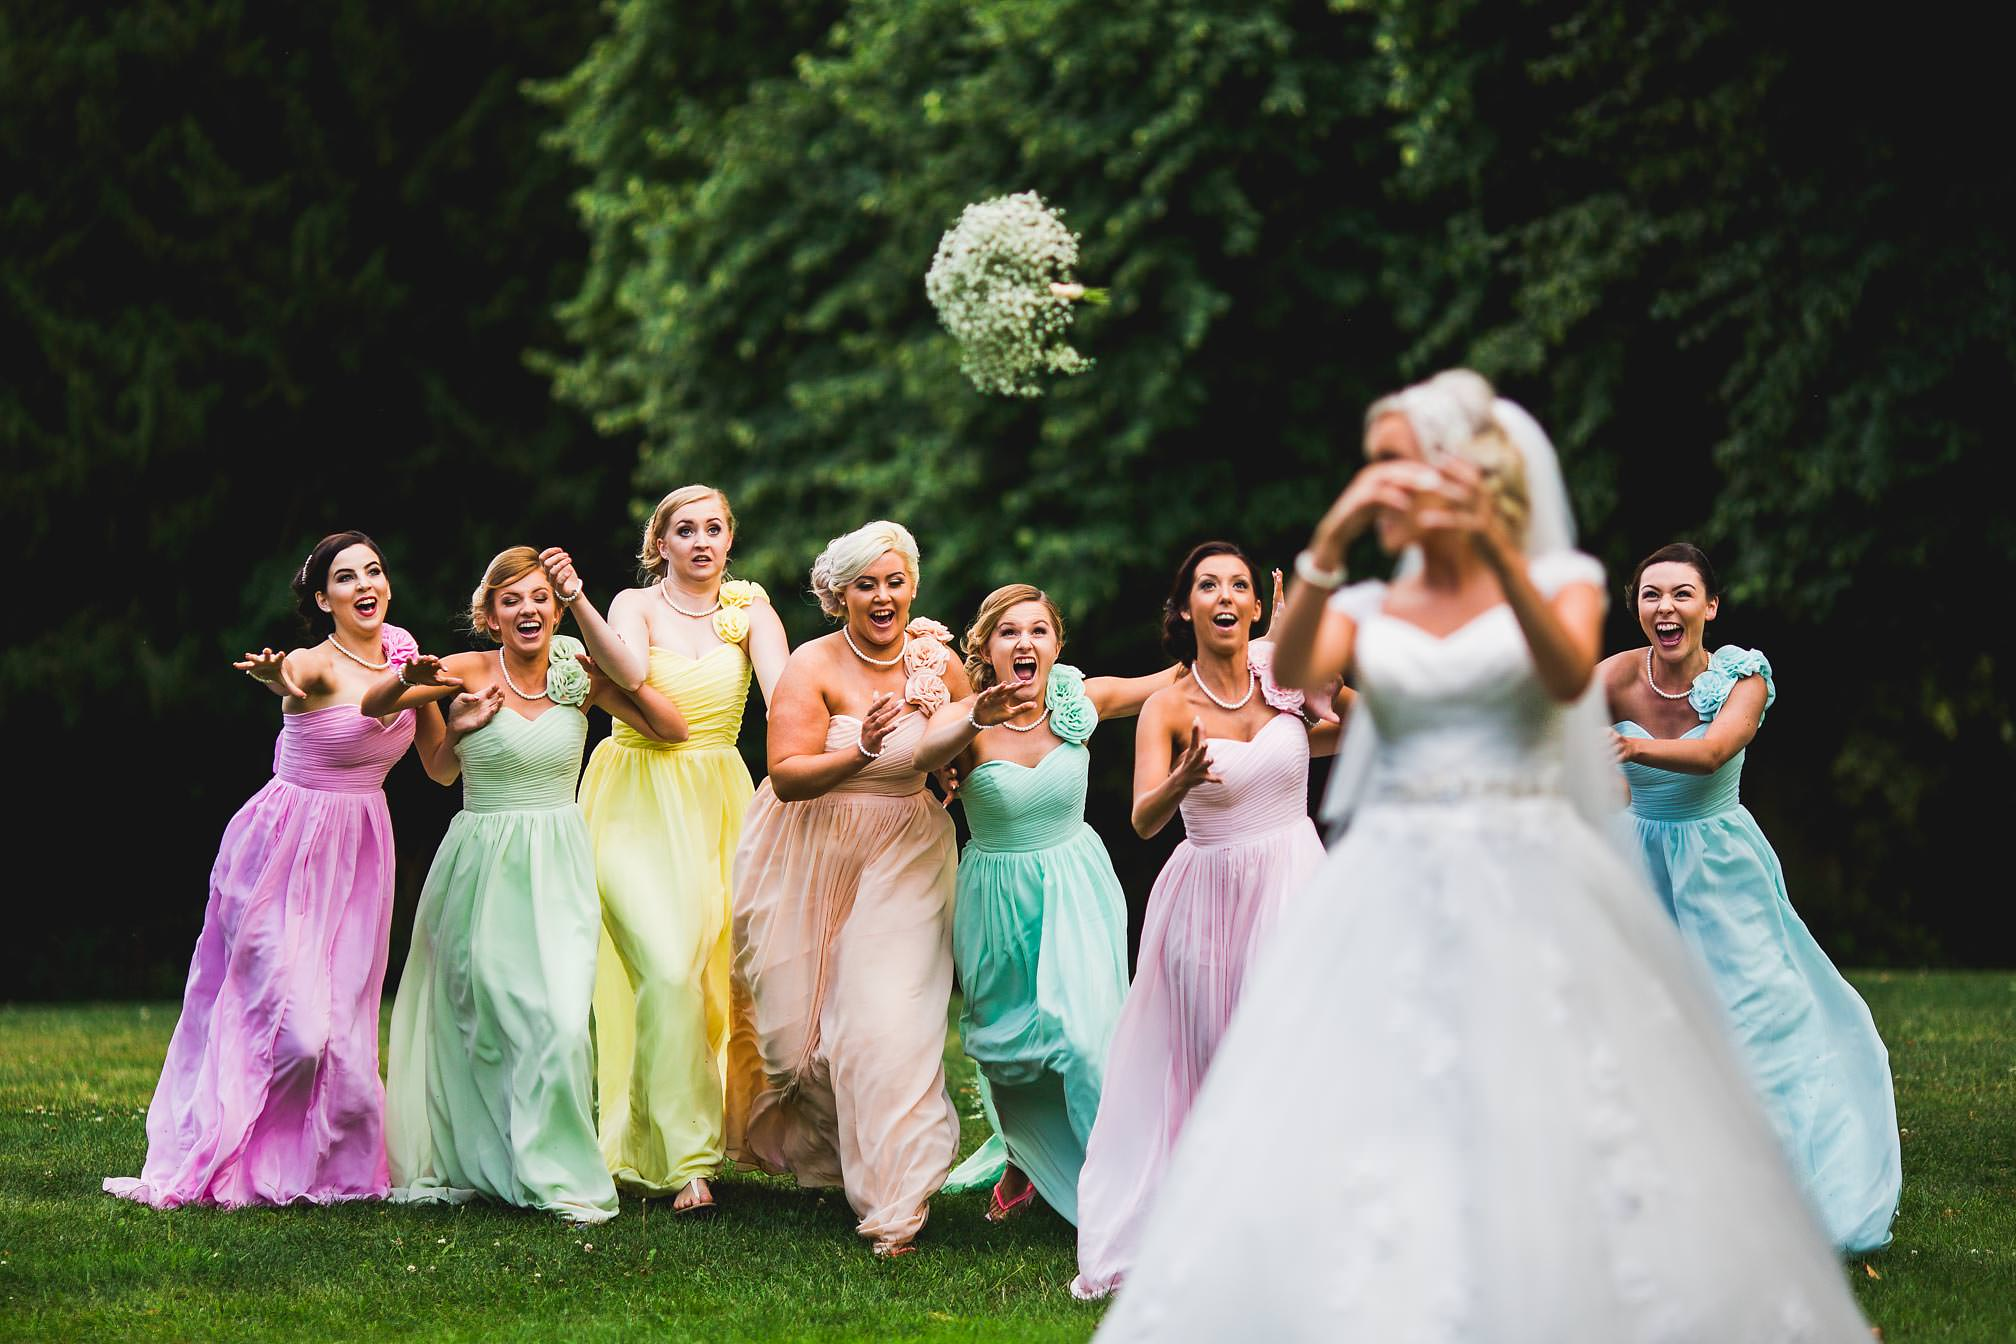 Rangefinder Magazine 30 Rising Stars of Wedding Photography 2017 - Tossing the Bouquet